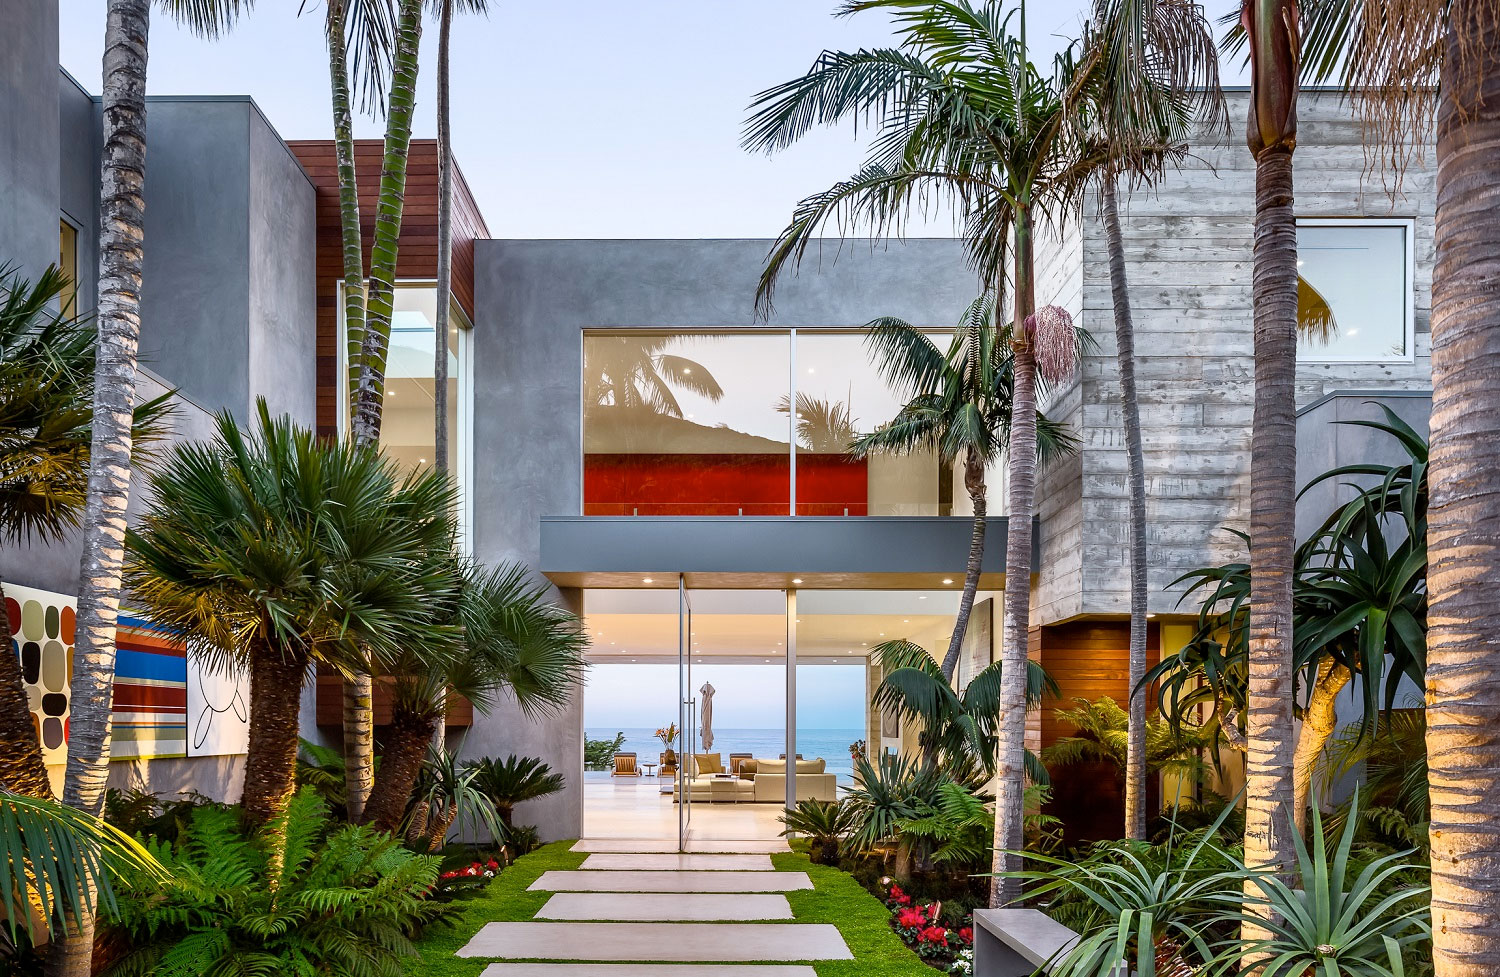 Live The High Life in This Jaw-Dropping Malibu Mansion